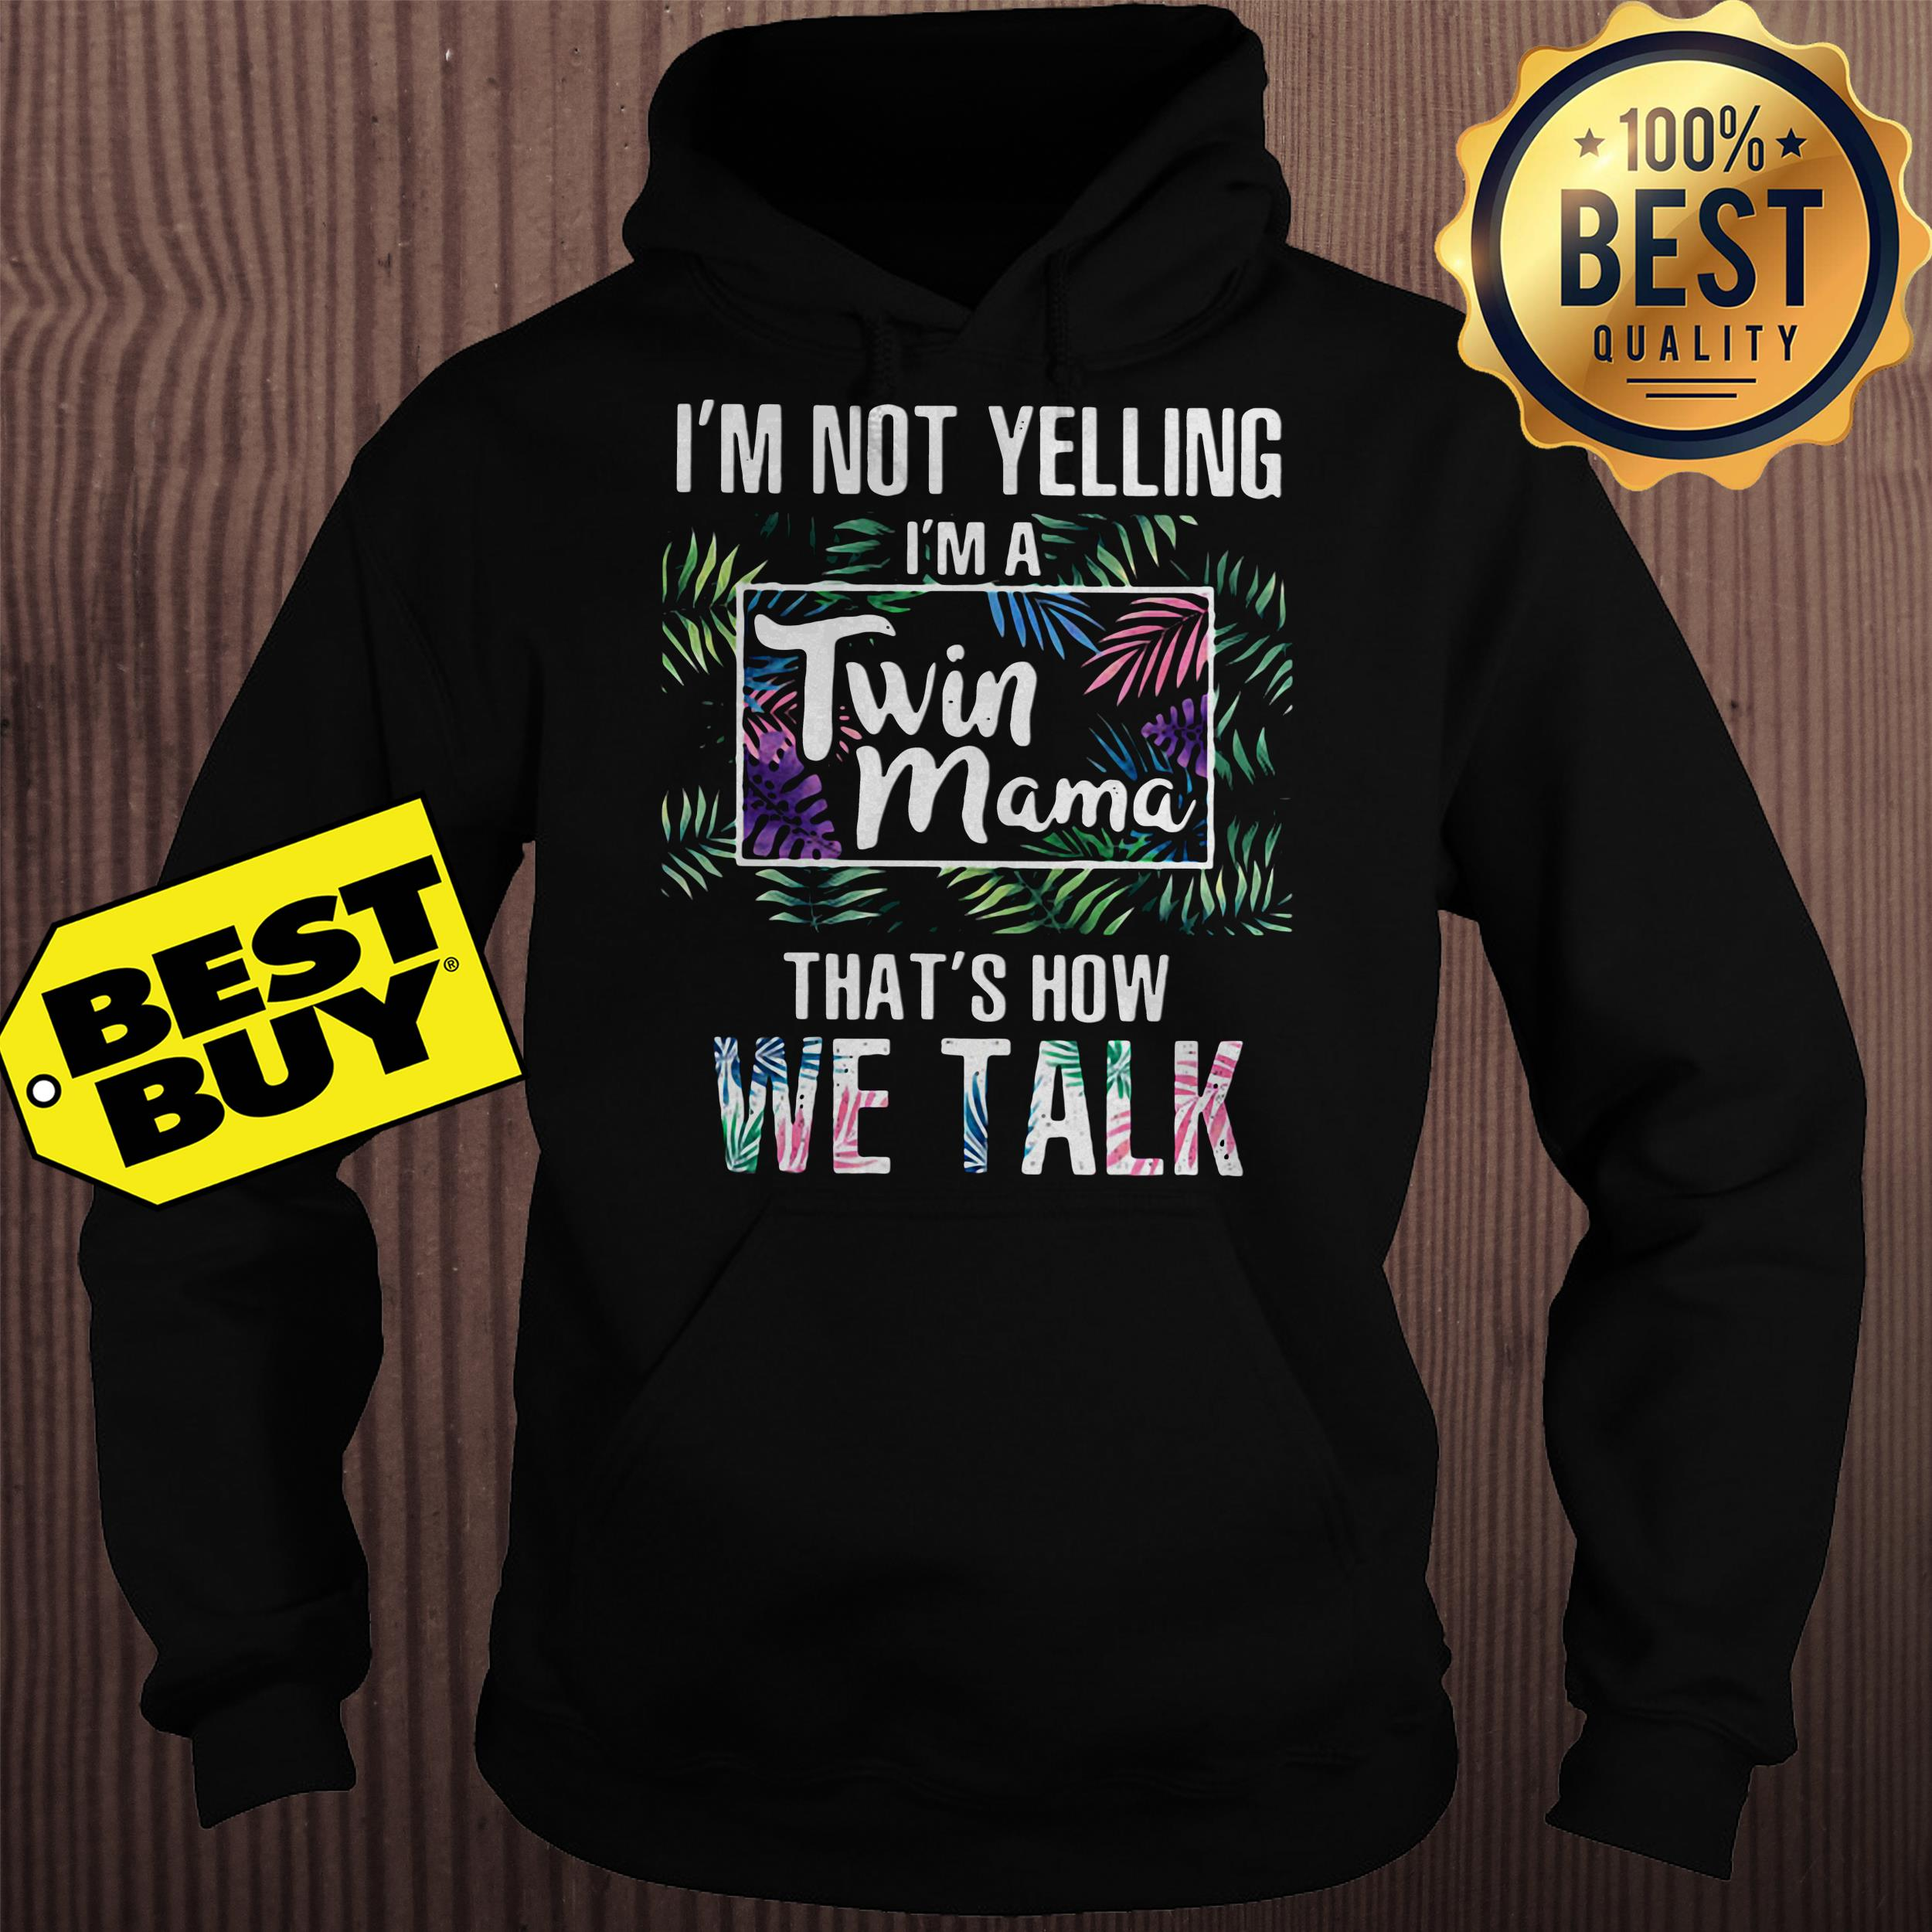 I'm not yelling I'm a twin mama that's how we talk hoodie